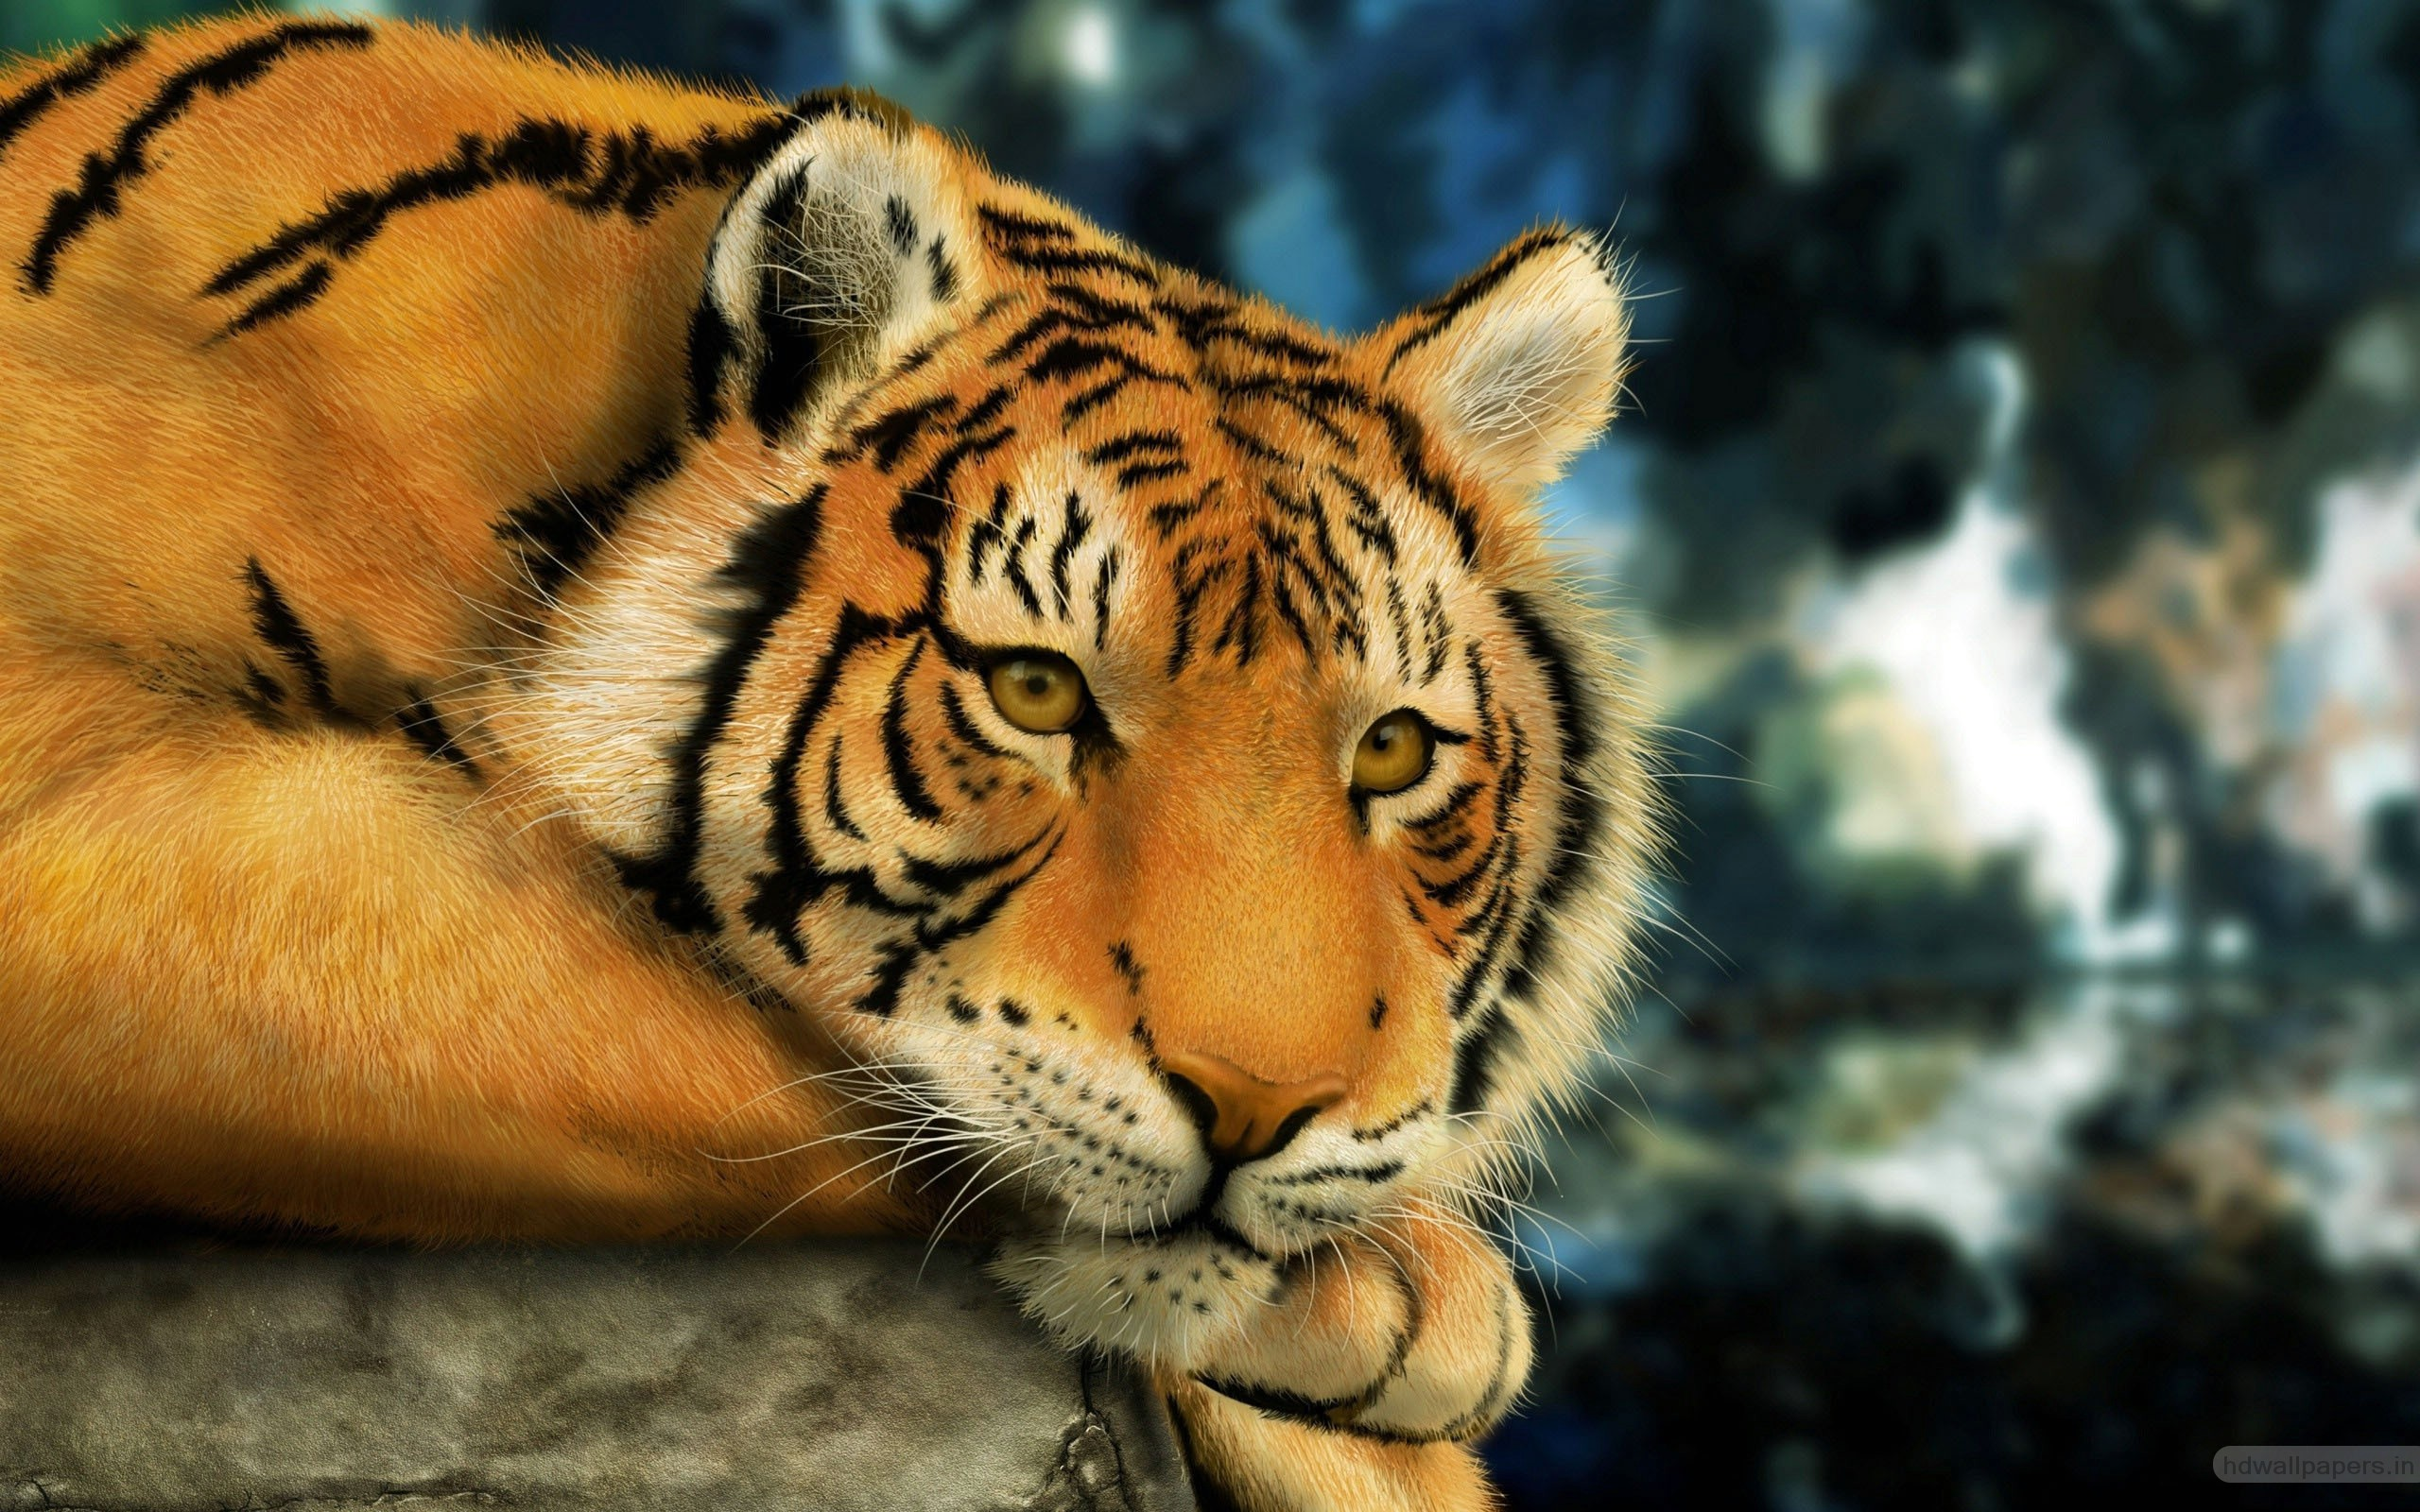 Tiger Painting Wallpapers HD Wallpapers 2560x1600